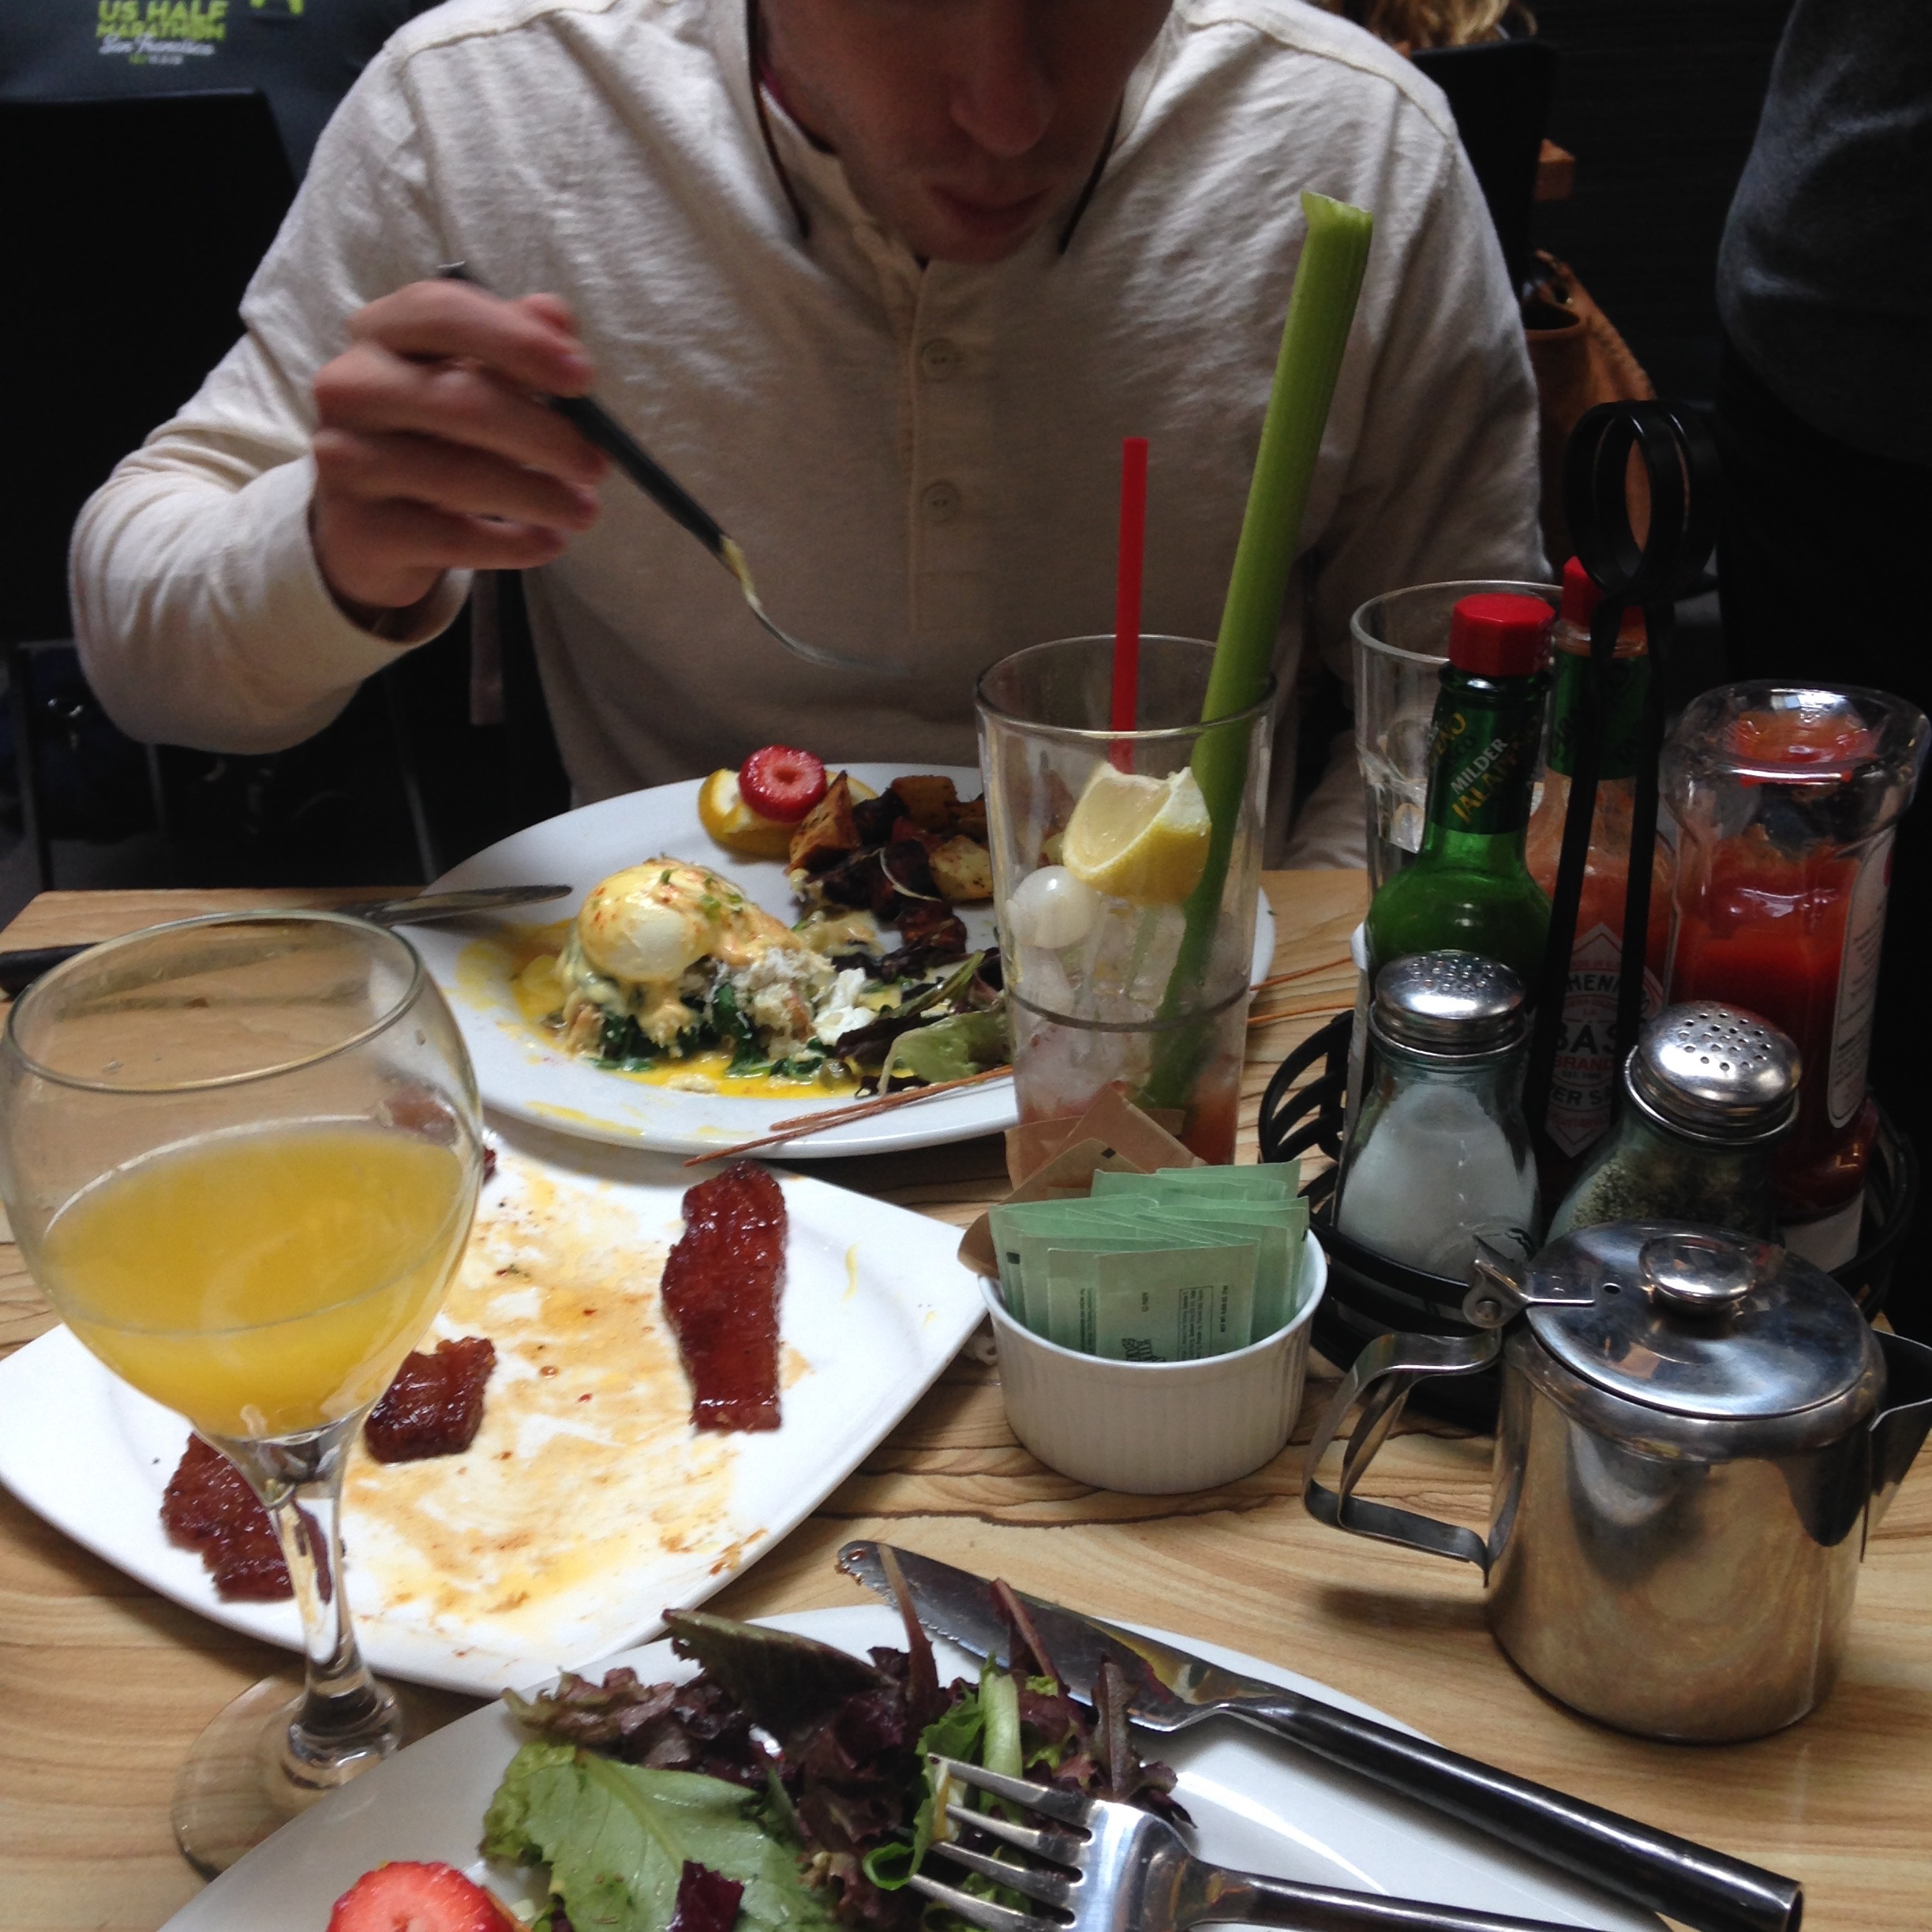 A couple weeks in we went to our first brunch in the city - something we especially loved doing at the time. This is at  Blackwood  in the Marina.